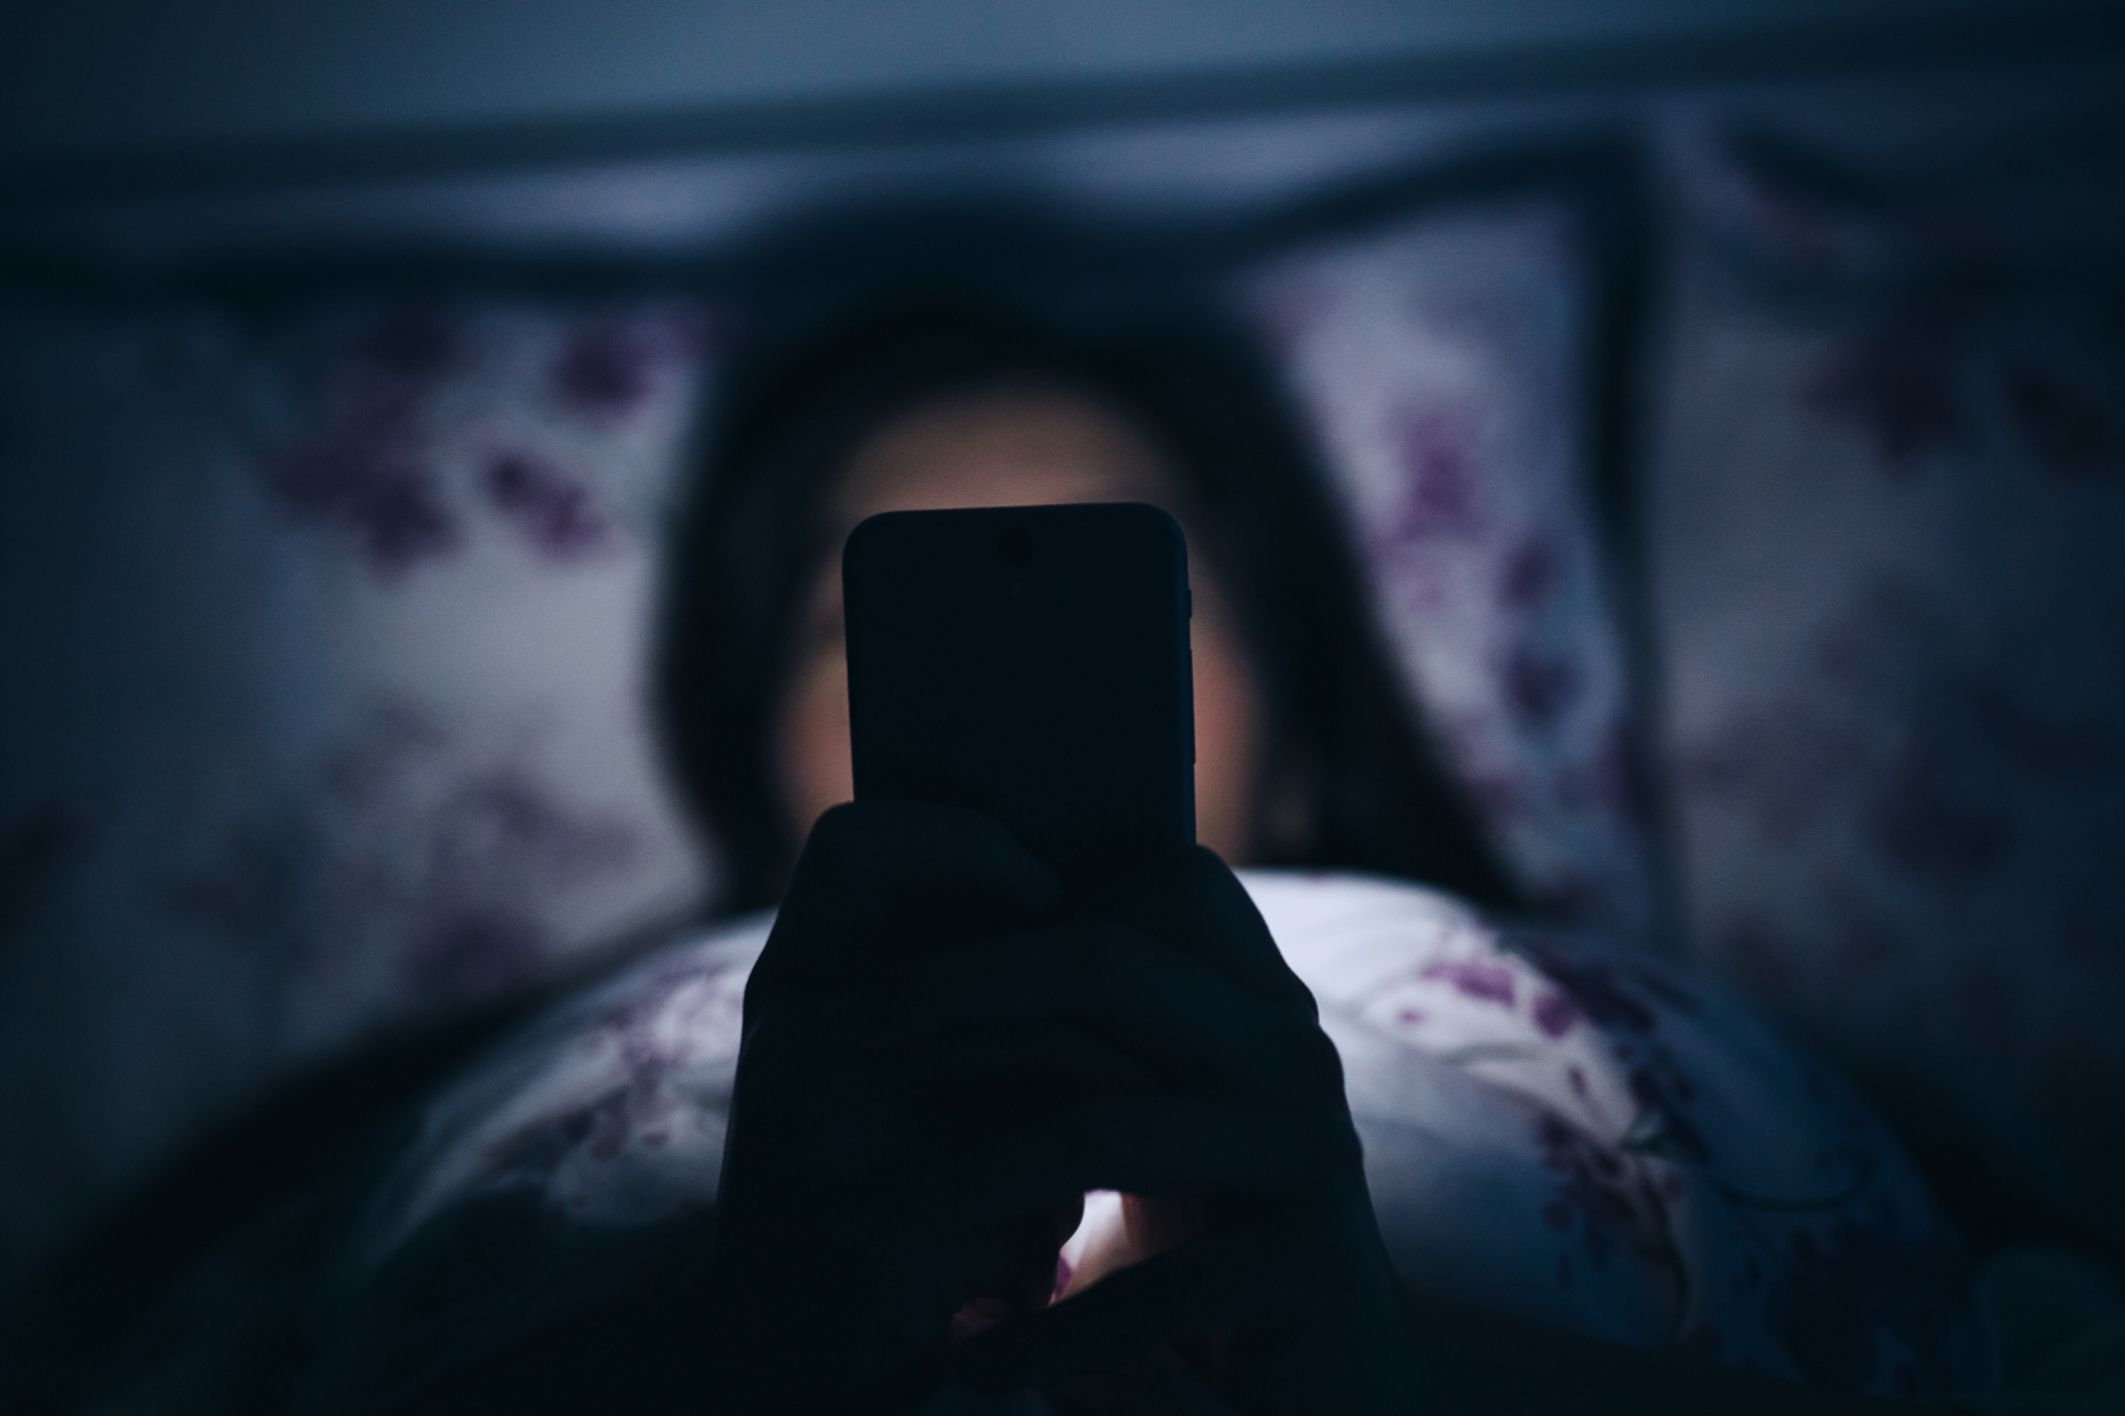 A woman texting on her bed at night